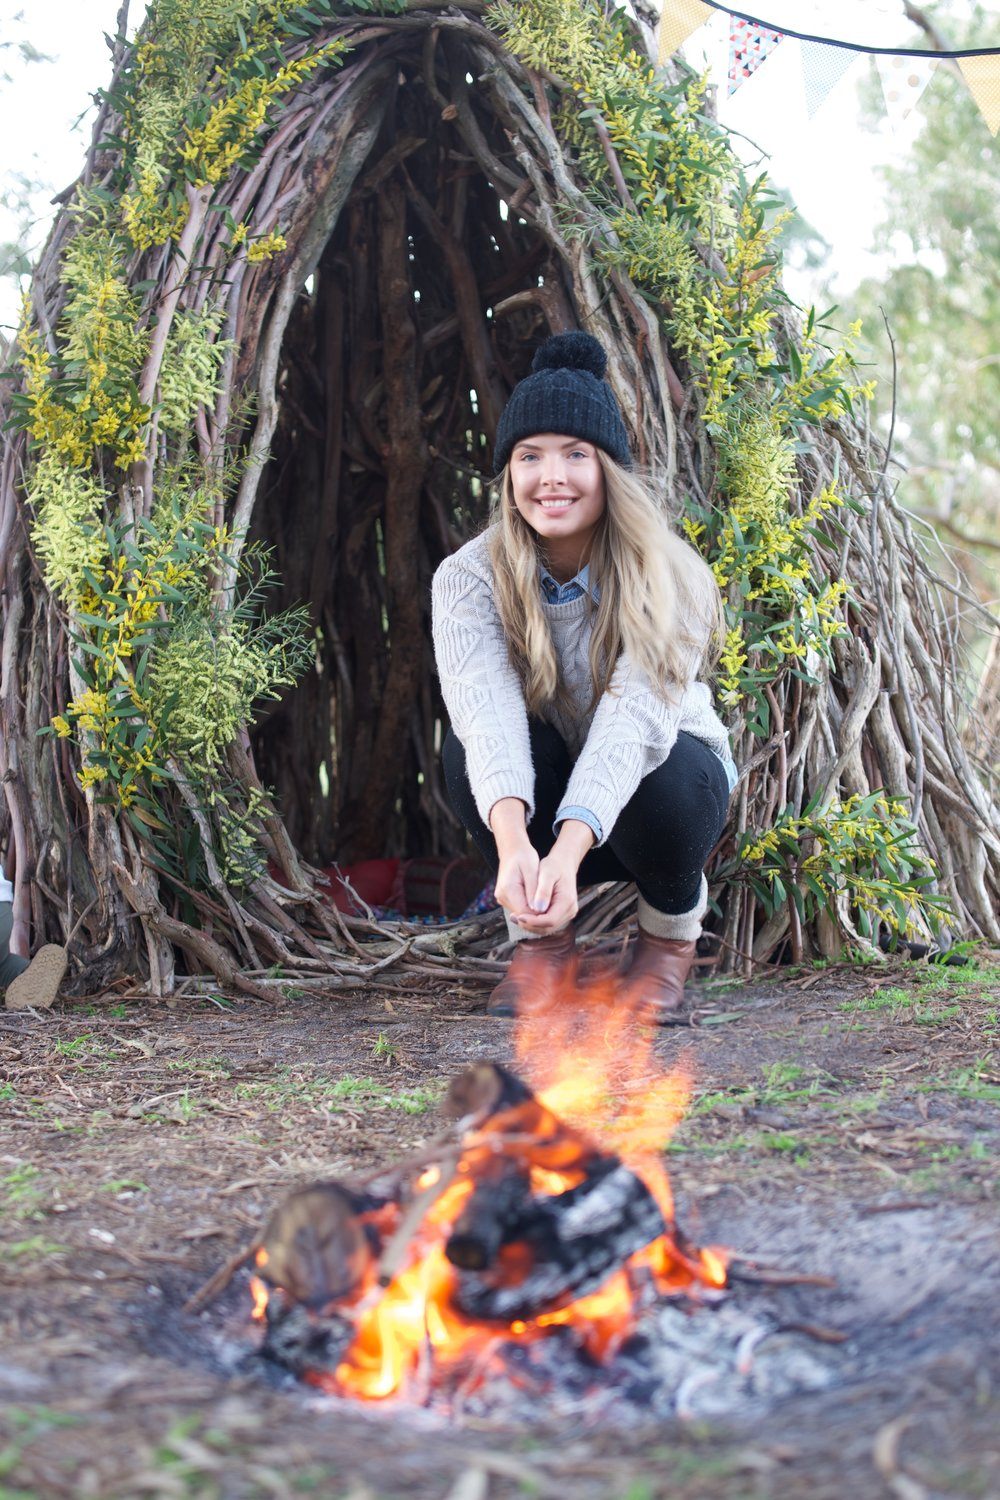 Campfires, Campouts and Farewells